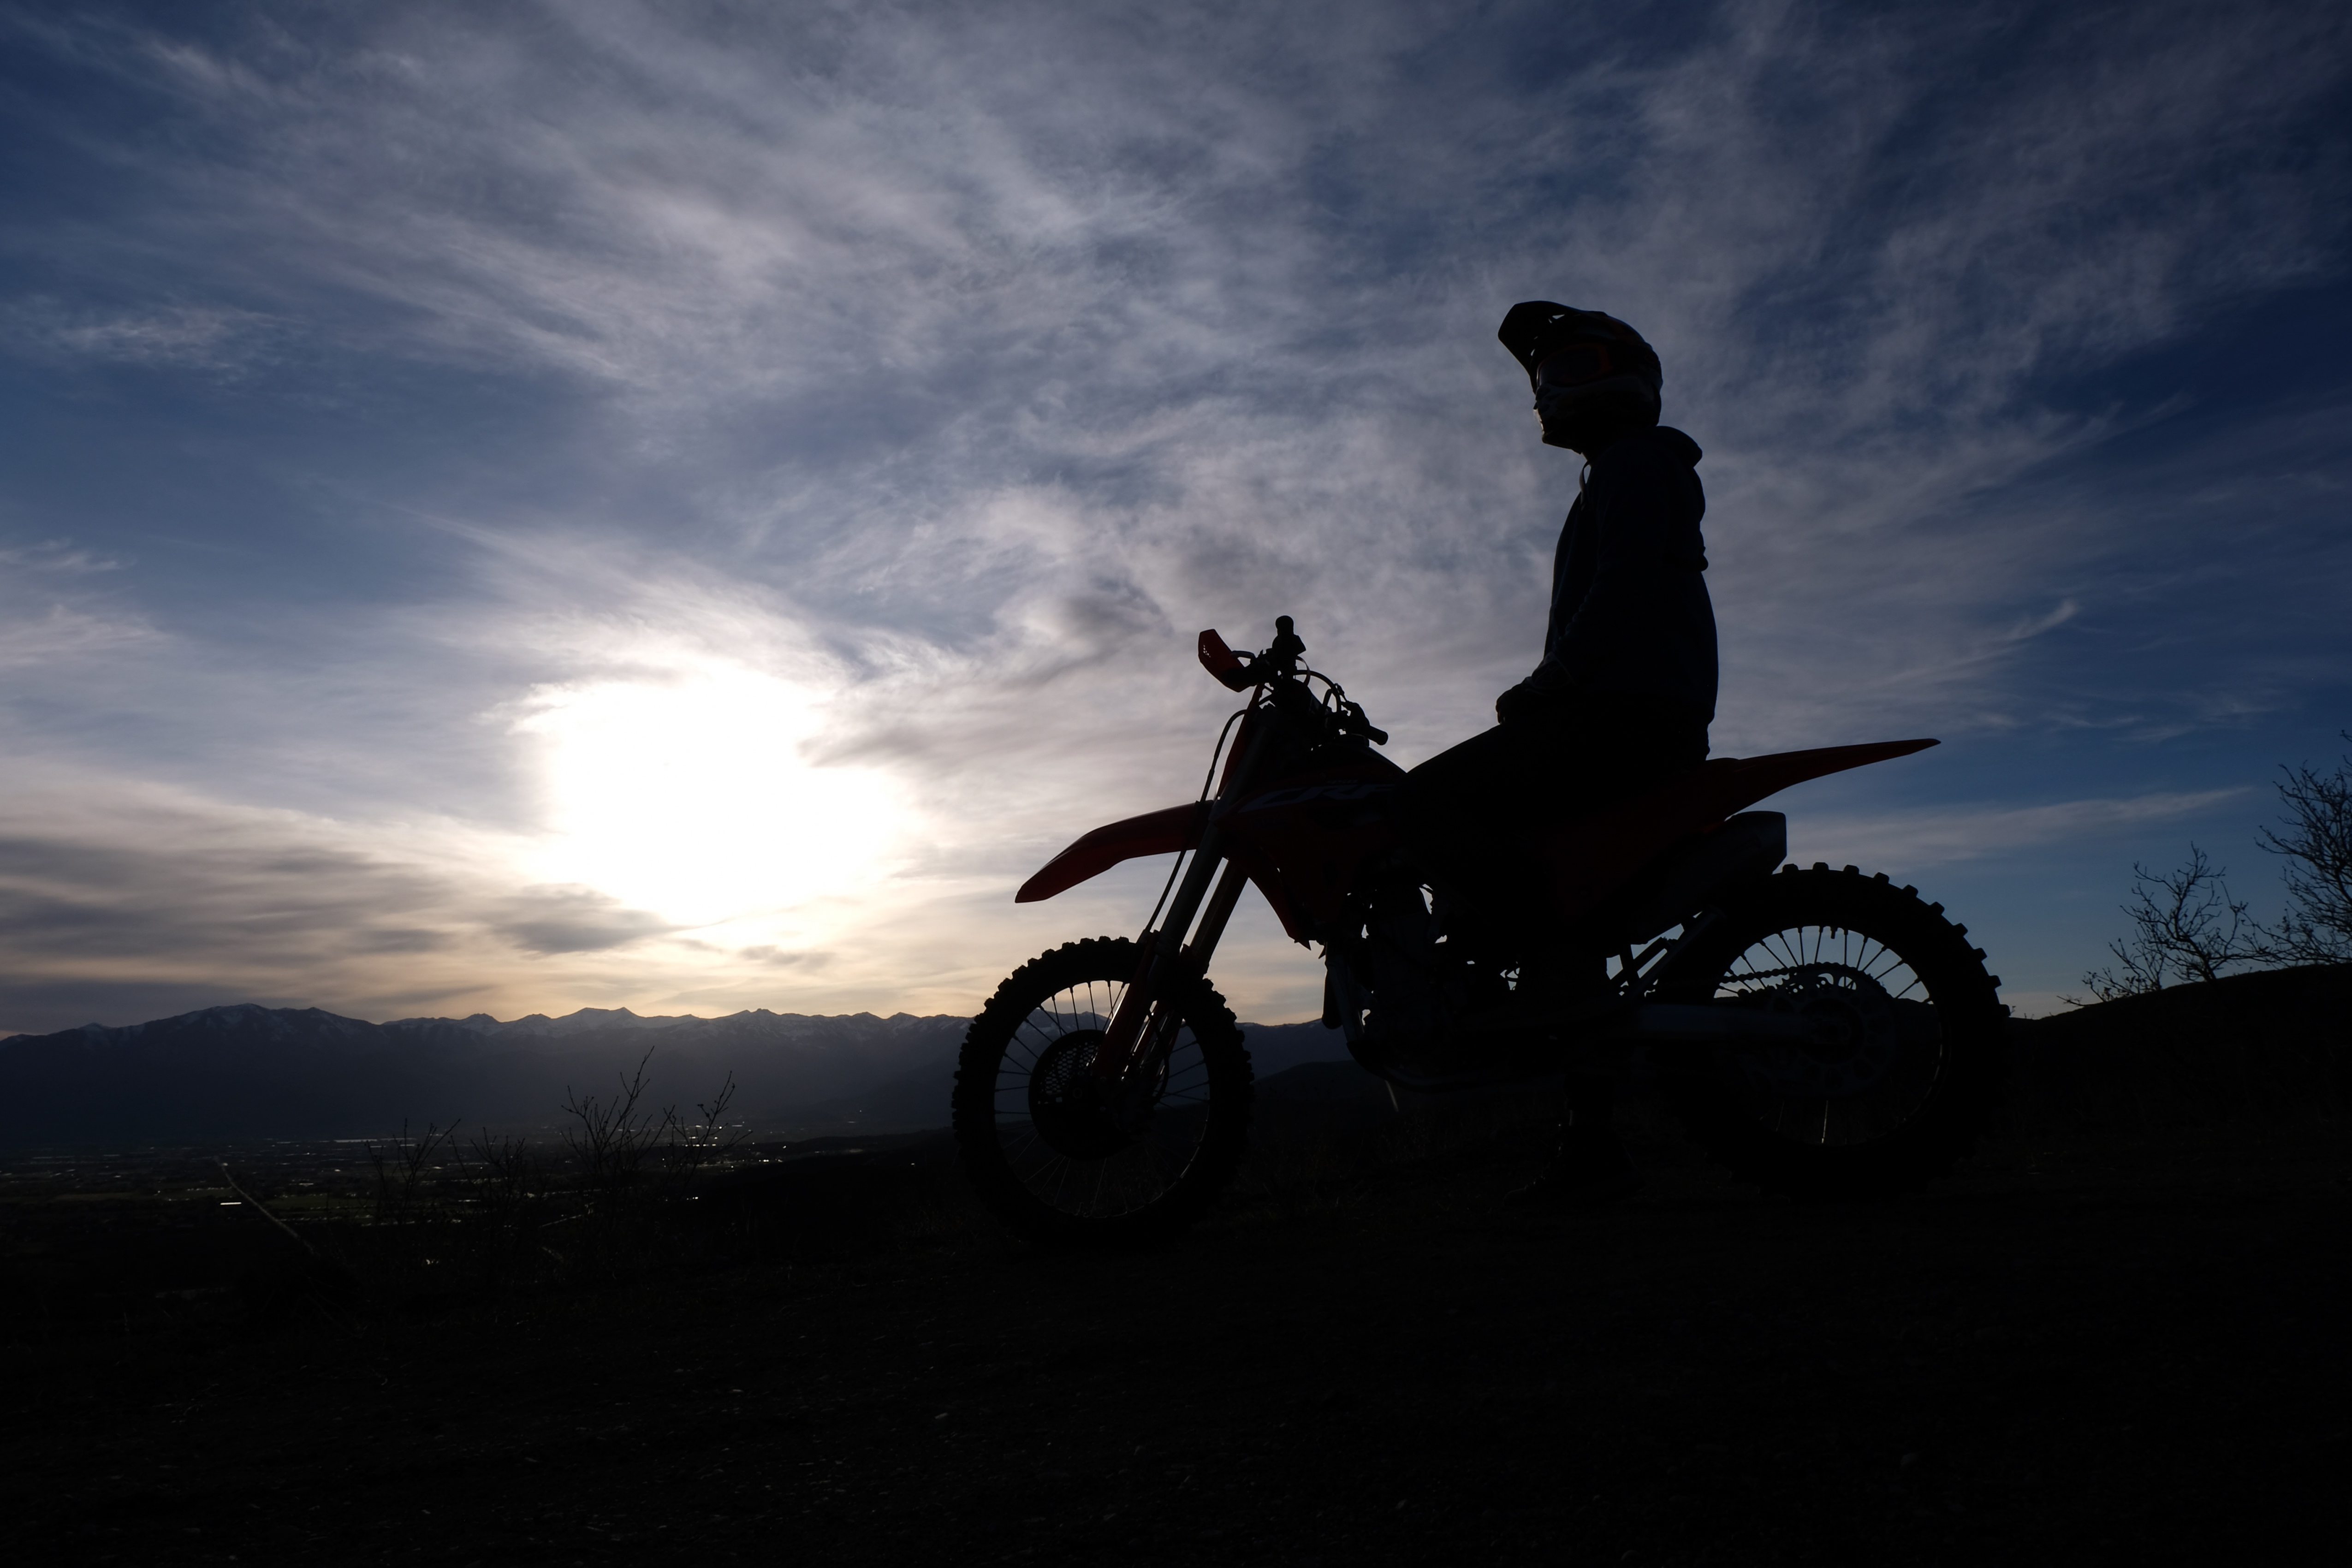 The author on the CRF450RX at dusk.